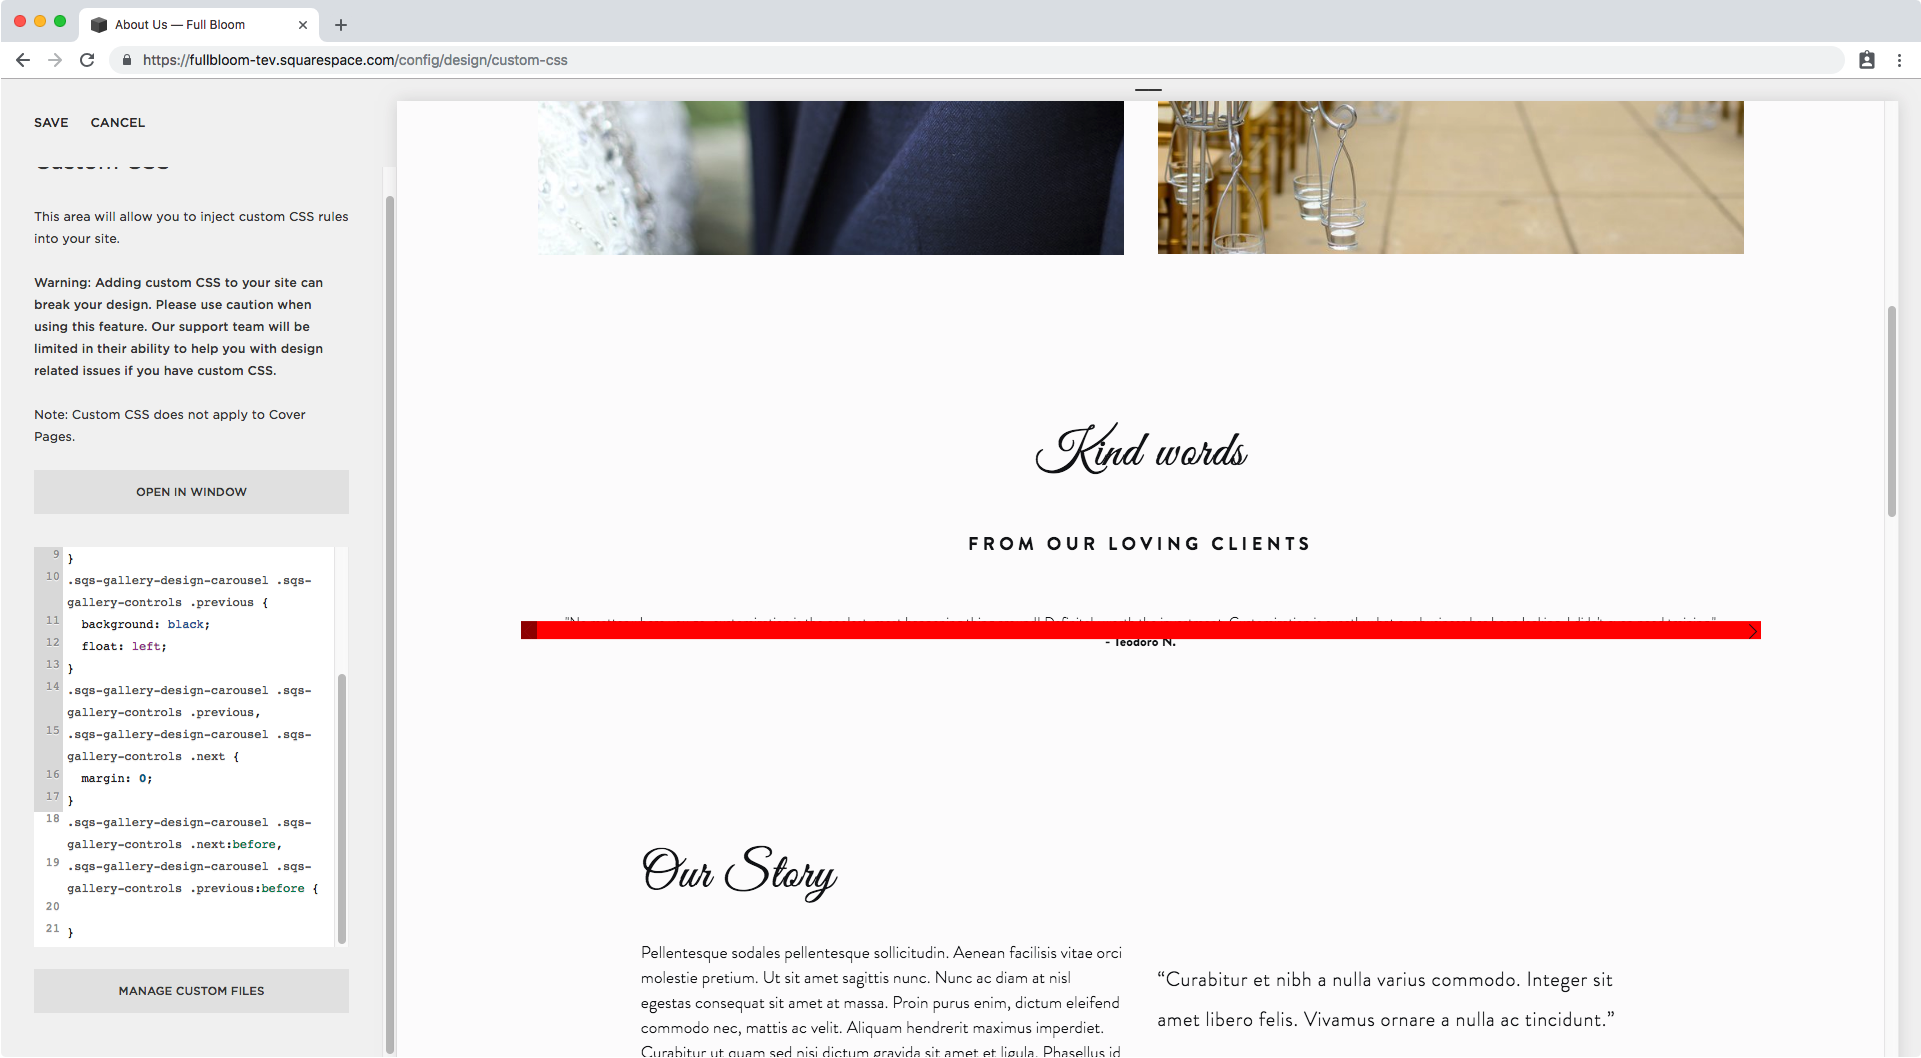 24. Custom CSS window in Squarespace.png